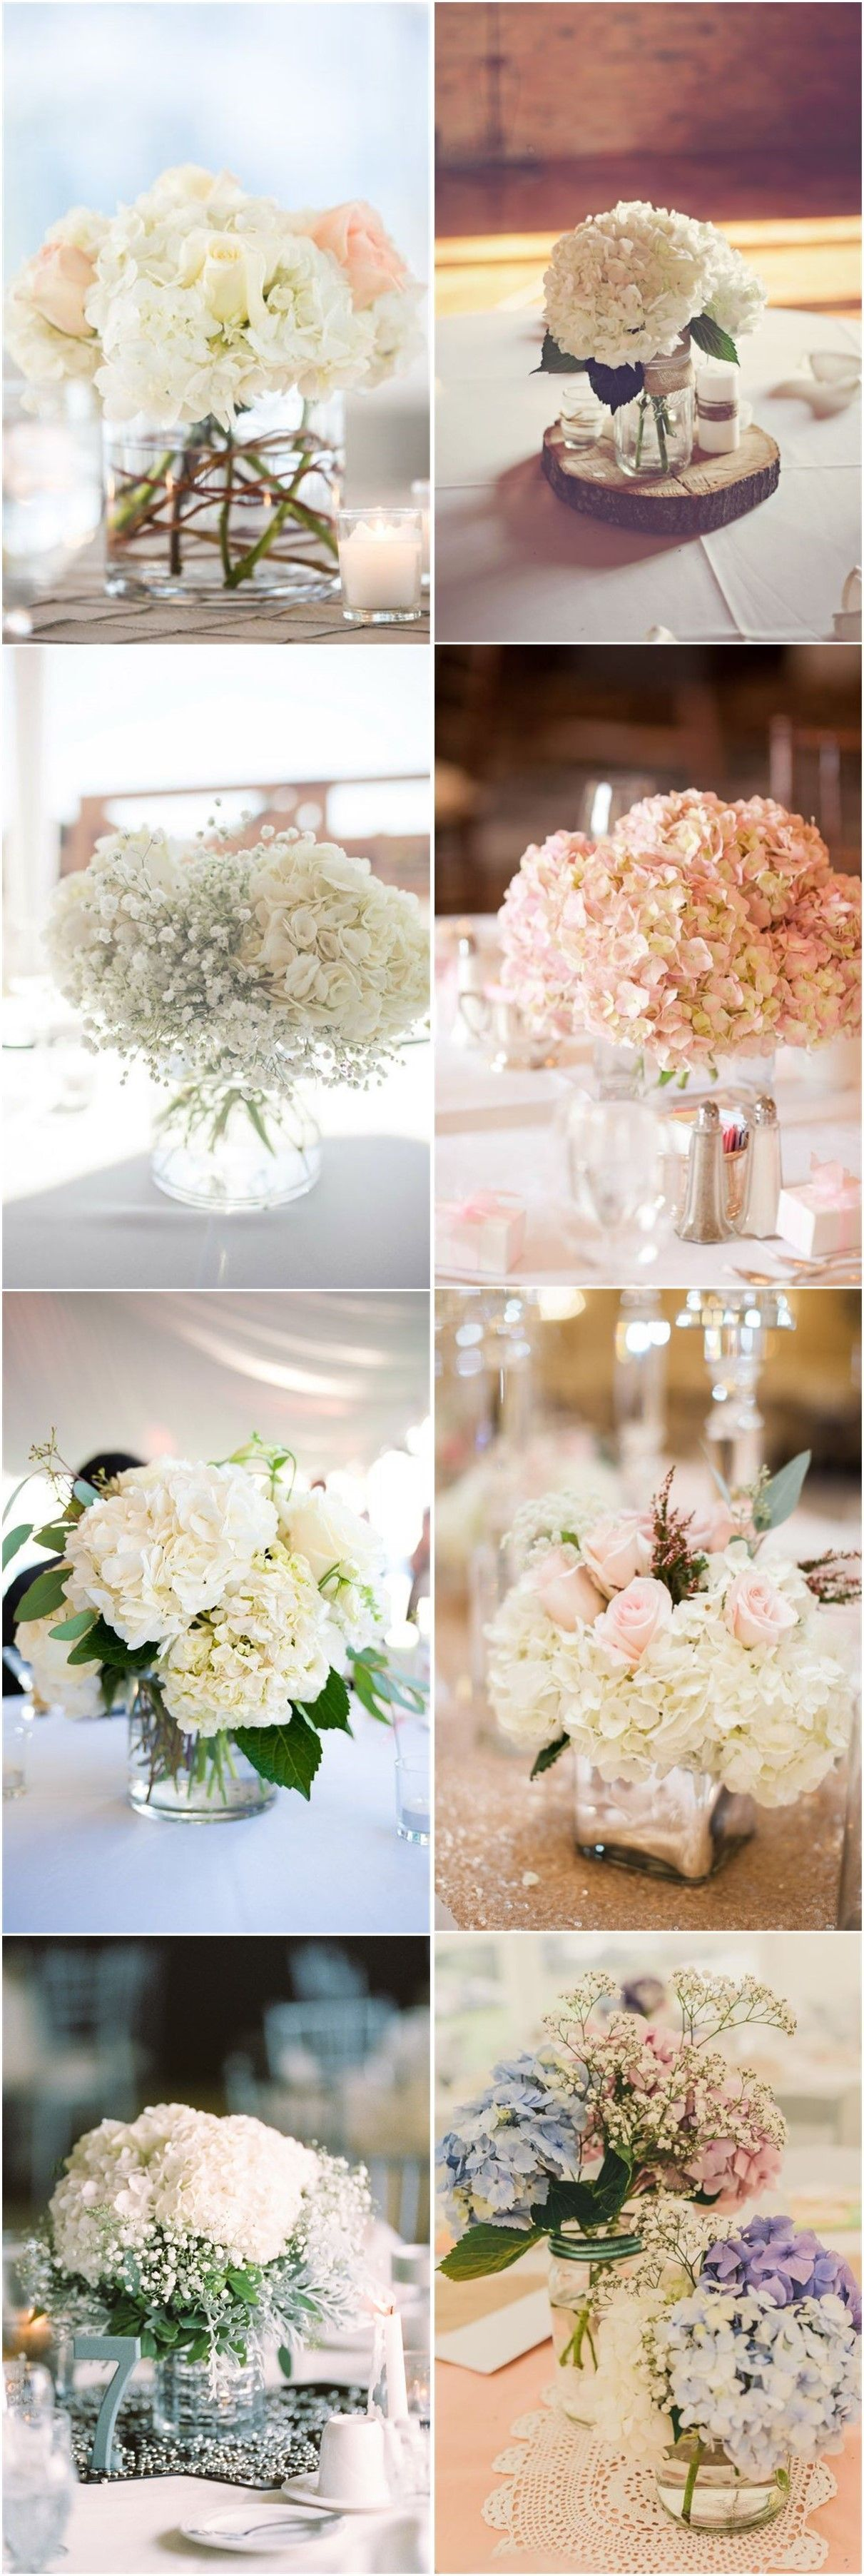 Wedding Centerpieces » 21 Simple Yet Rustic DIY Hydrangea Wedding ...